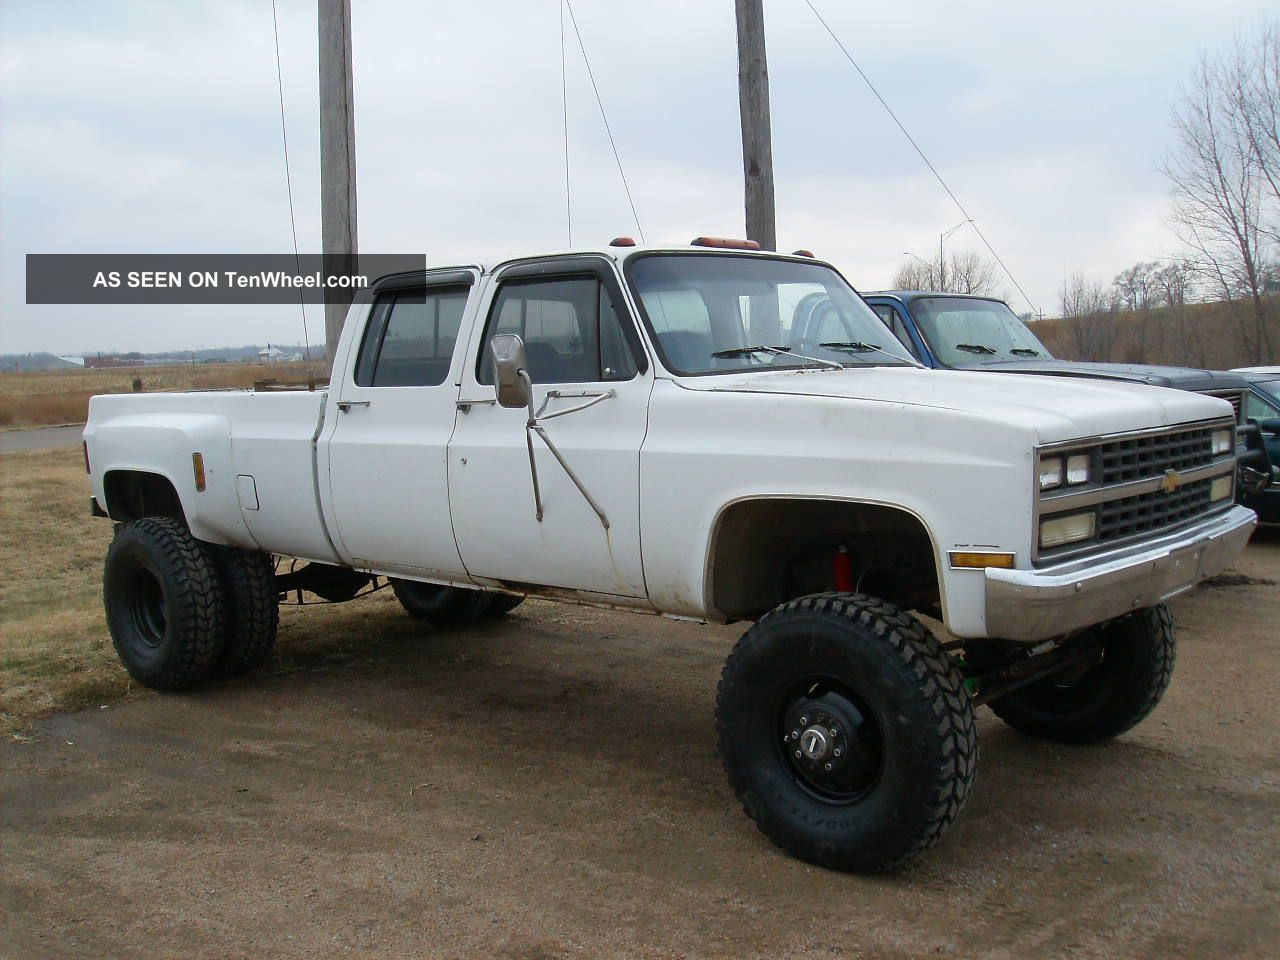 Chevy lifted dually huge 1977 lifted 1 ton chevy crew cab dually 4x4 long box